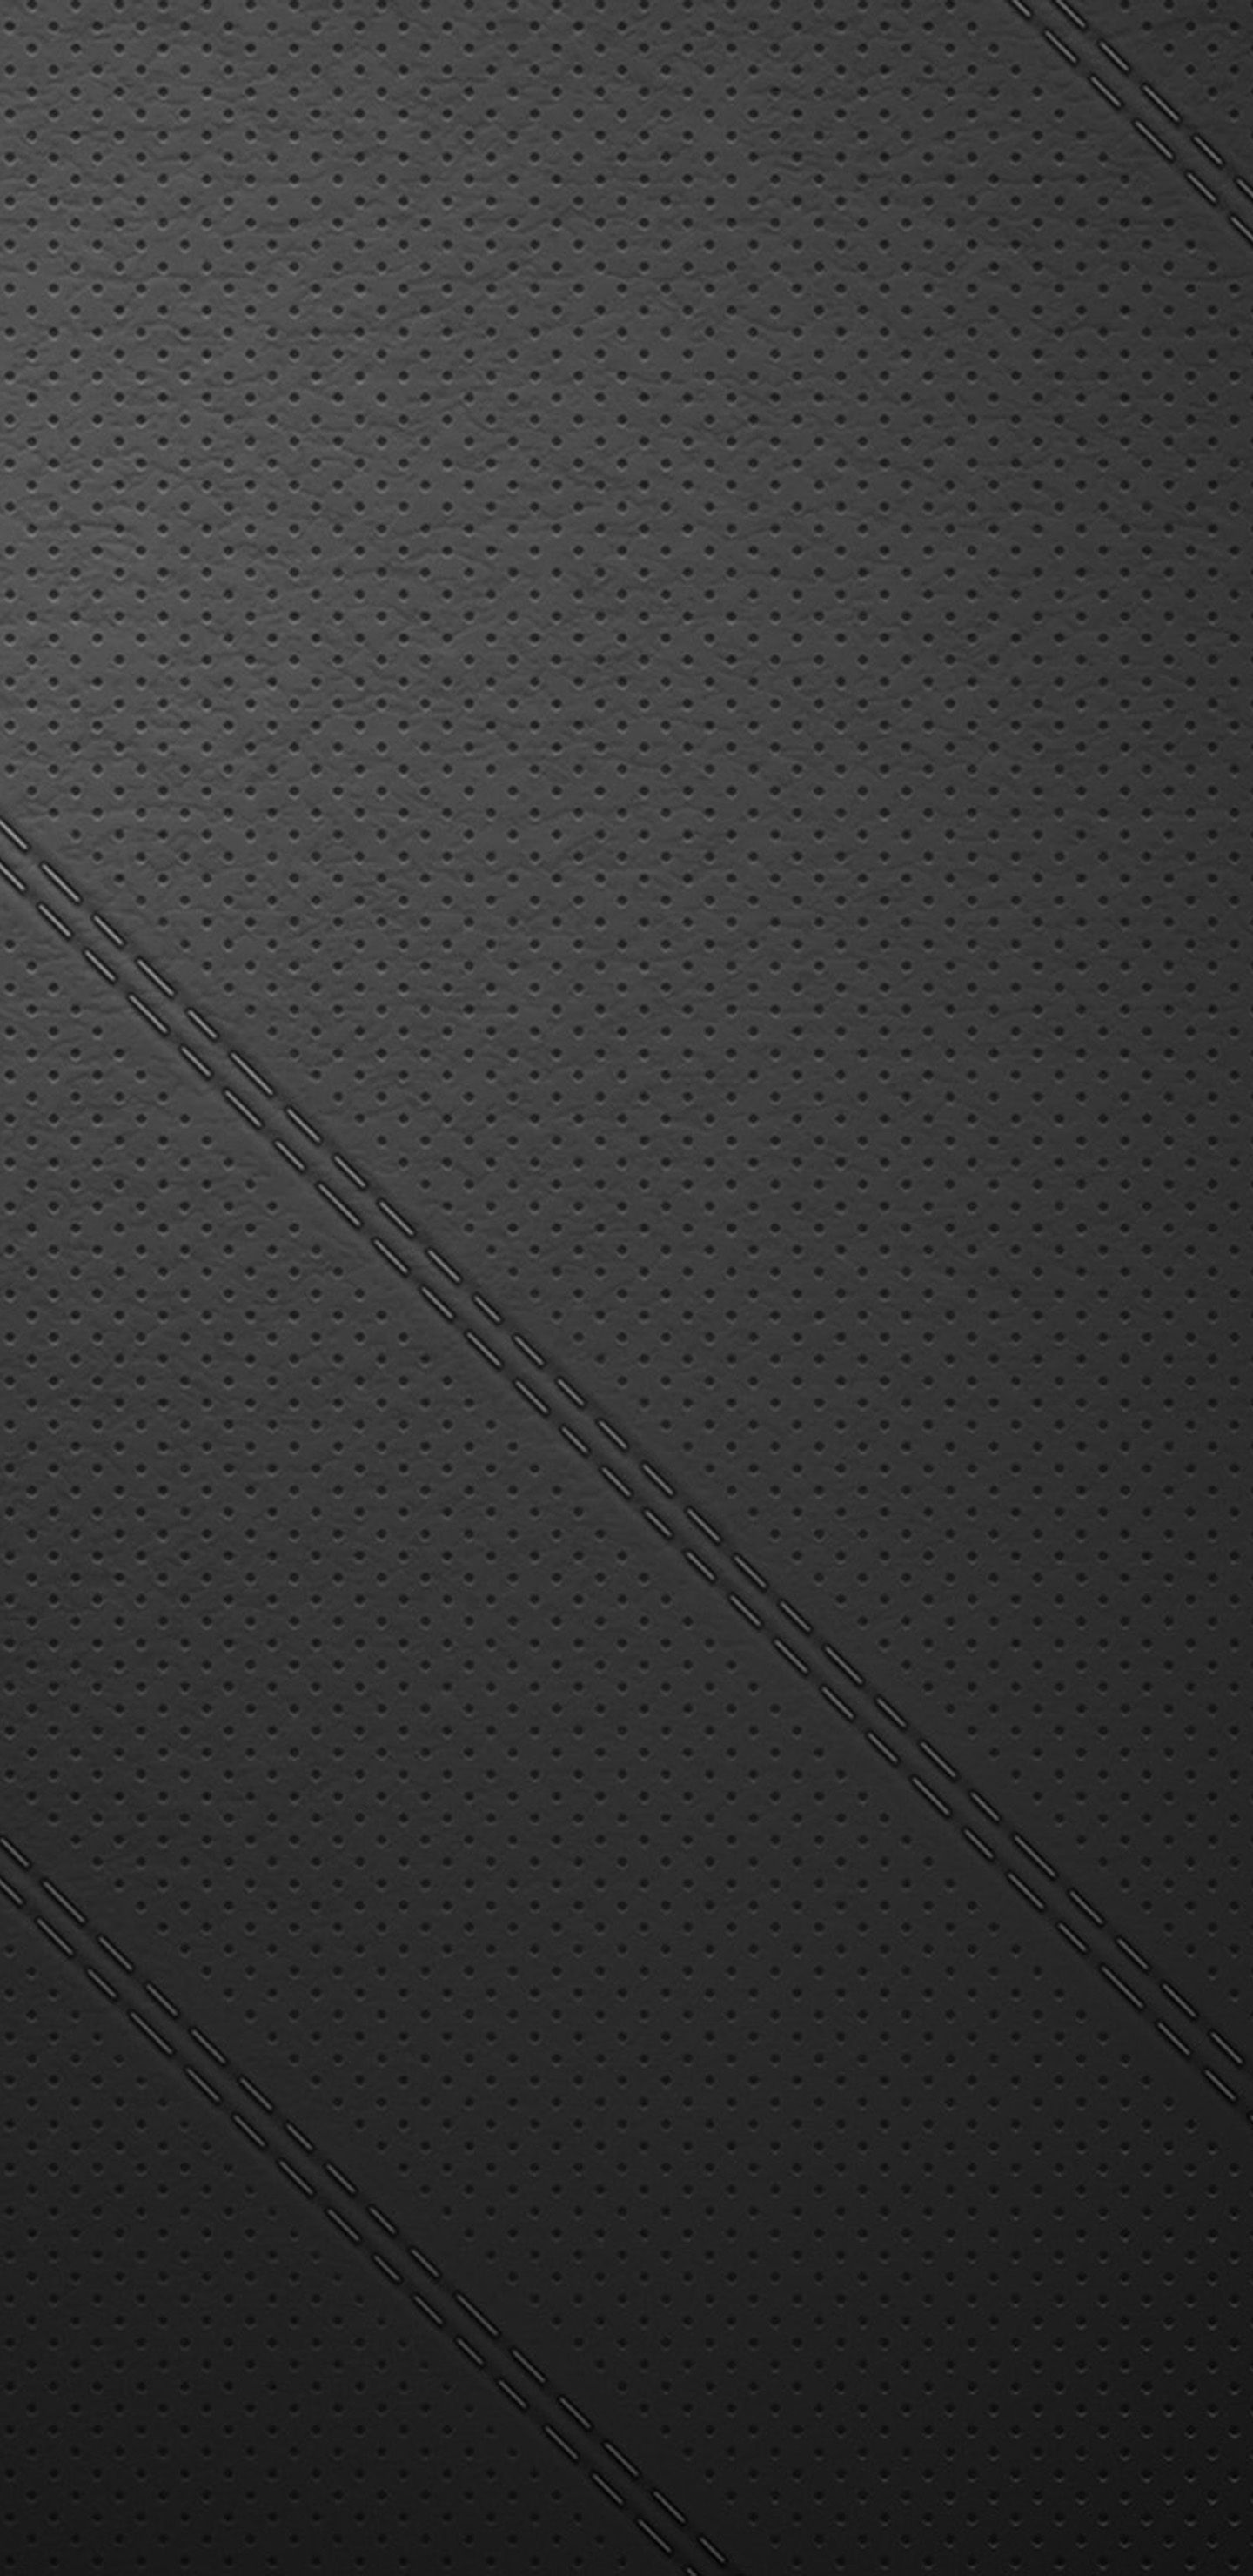 1440x2960 Black Leather Wallpaper Android - #thewomenmenadore